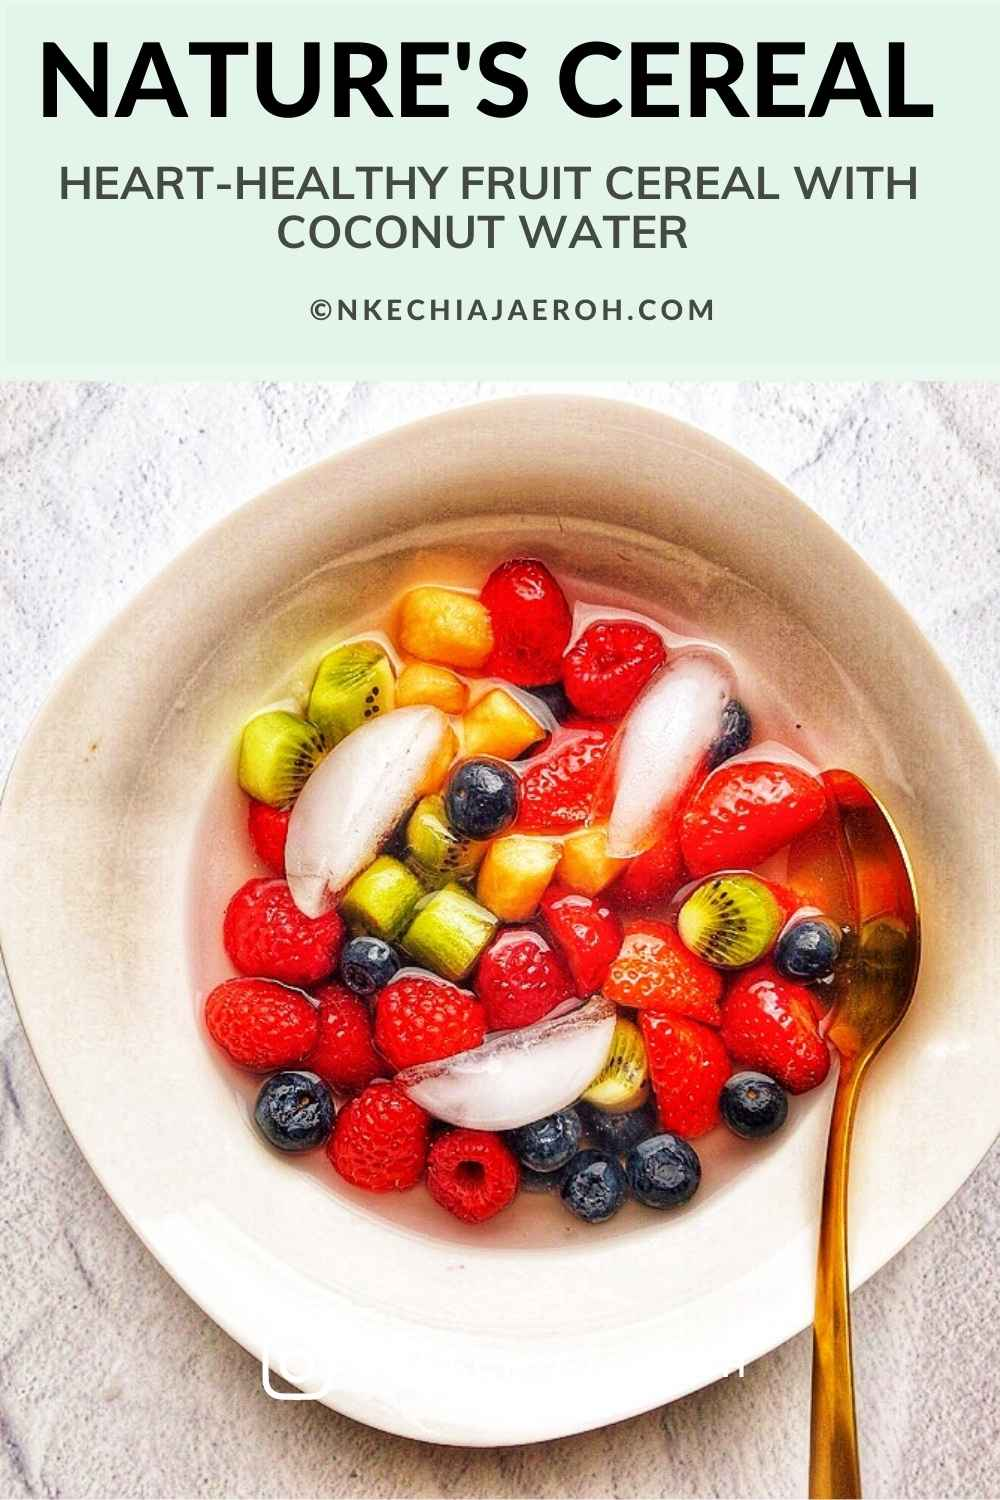 Delight yourself with a bowl of viral TikTok nature's cereal; add your favorite berries and fruits to a bowl, pour some coconut water, ice cubes, and enjoy! You won't believe the refreshing goodness of this fruit cereal! The best thing is that this healthy cereal recipe is easy! #viralnaturescerealvideo #naturescerealrecipe #naturescereal #fruitcereal #fruitbowl #coconutwater